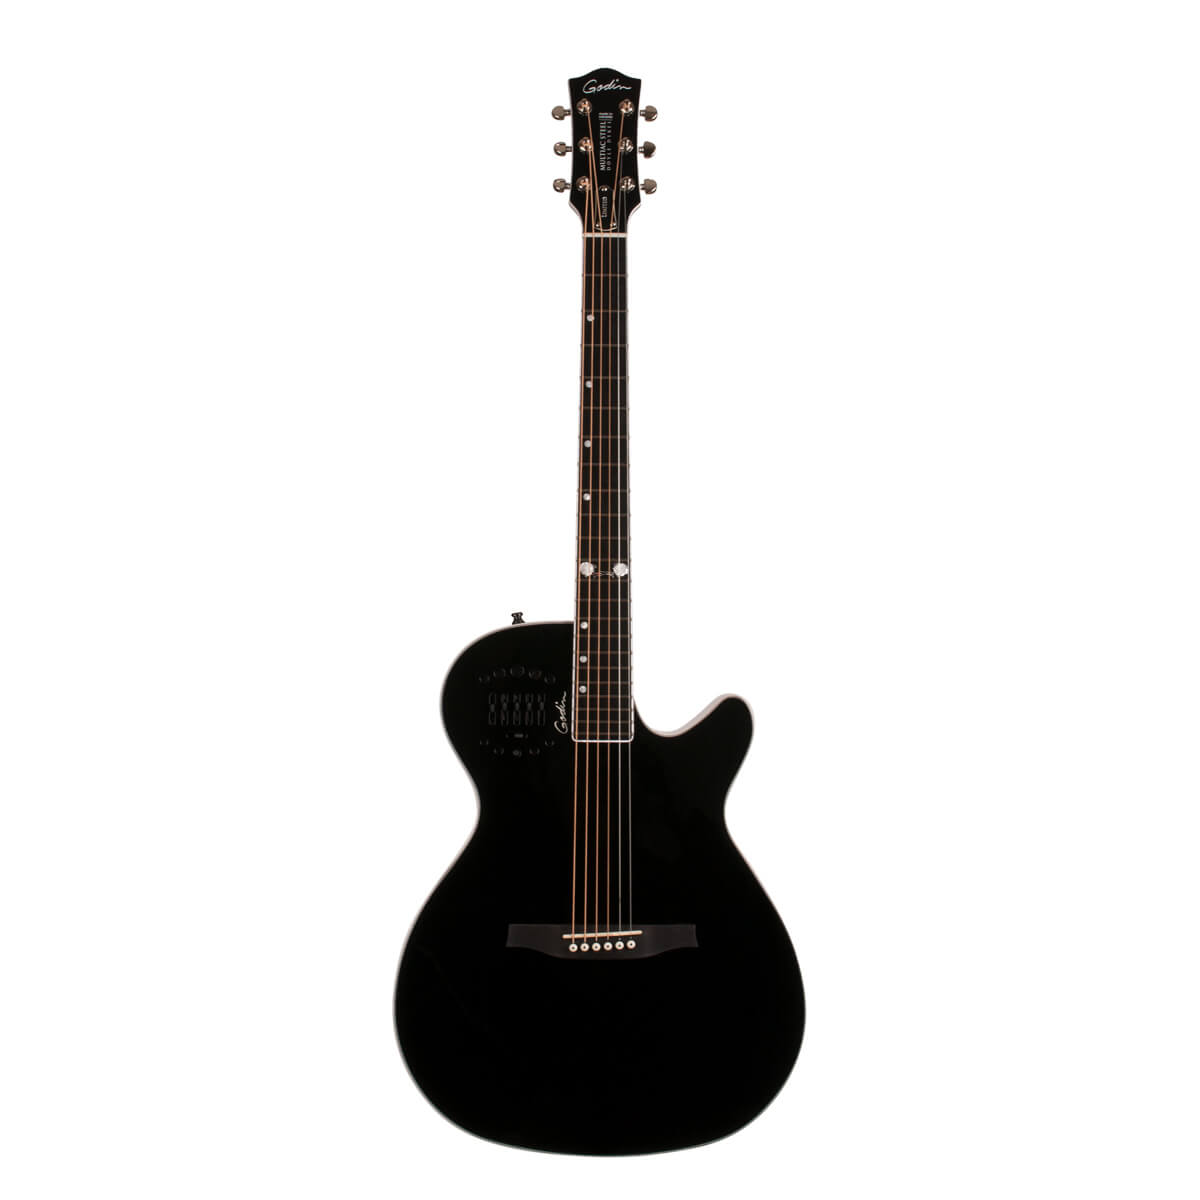 Image of   Godin Multiac Steel Doyle Dykes Signature Edition western-guitar black HG